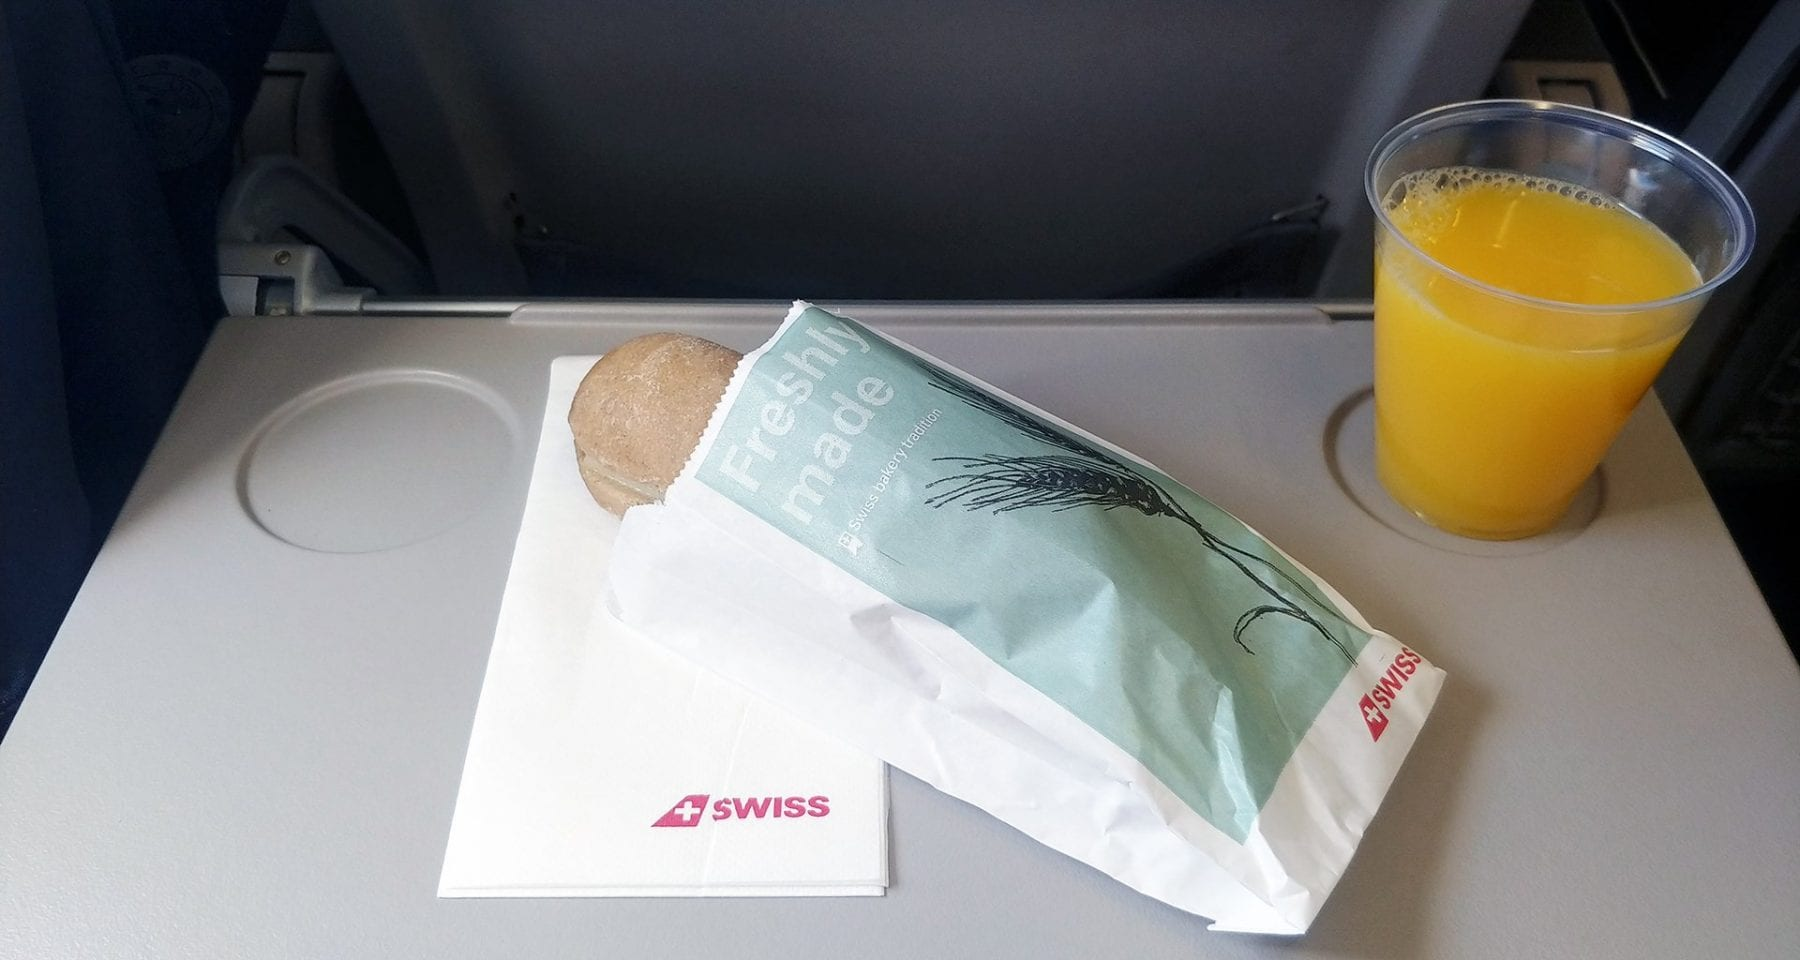 swiss air economy class meal